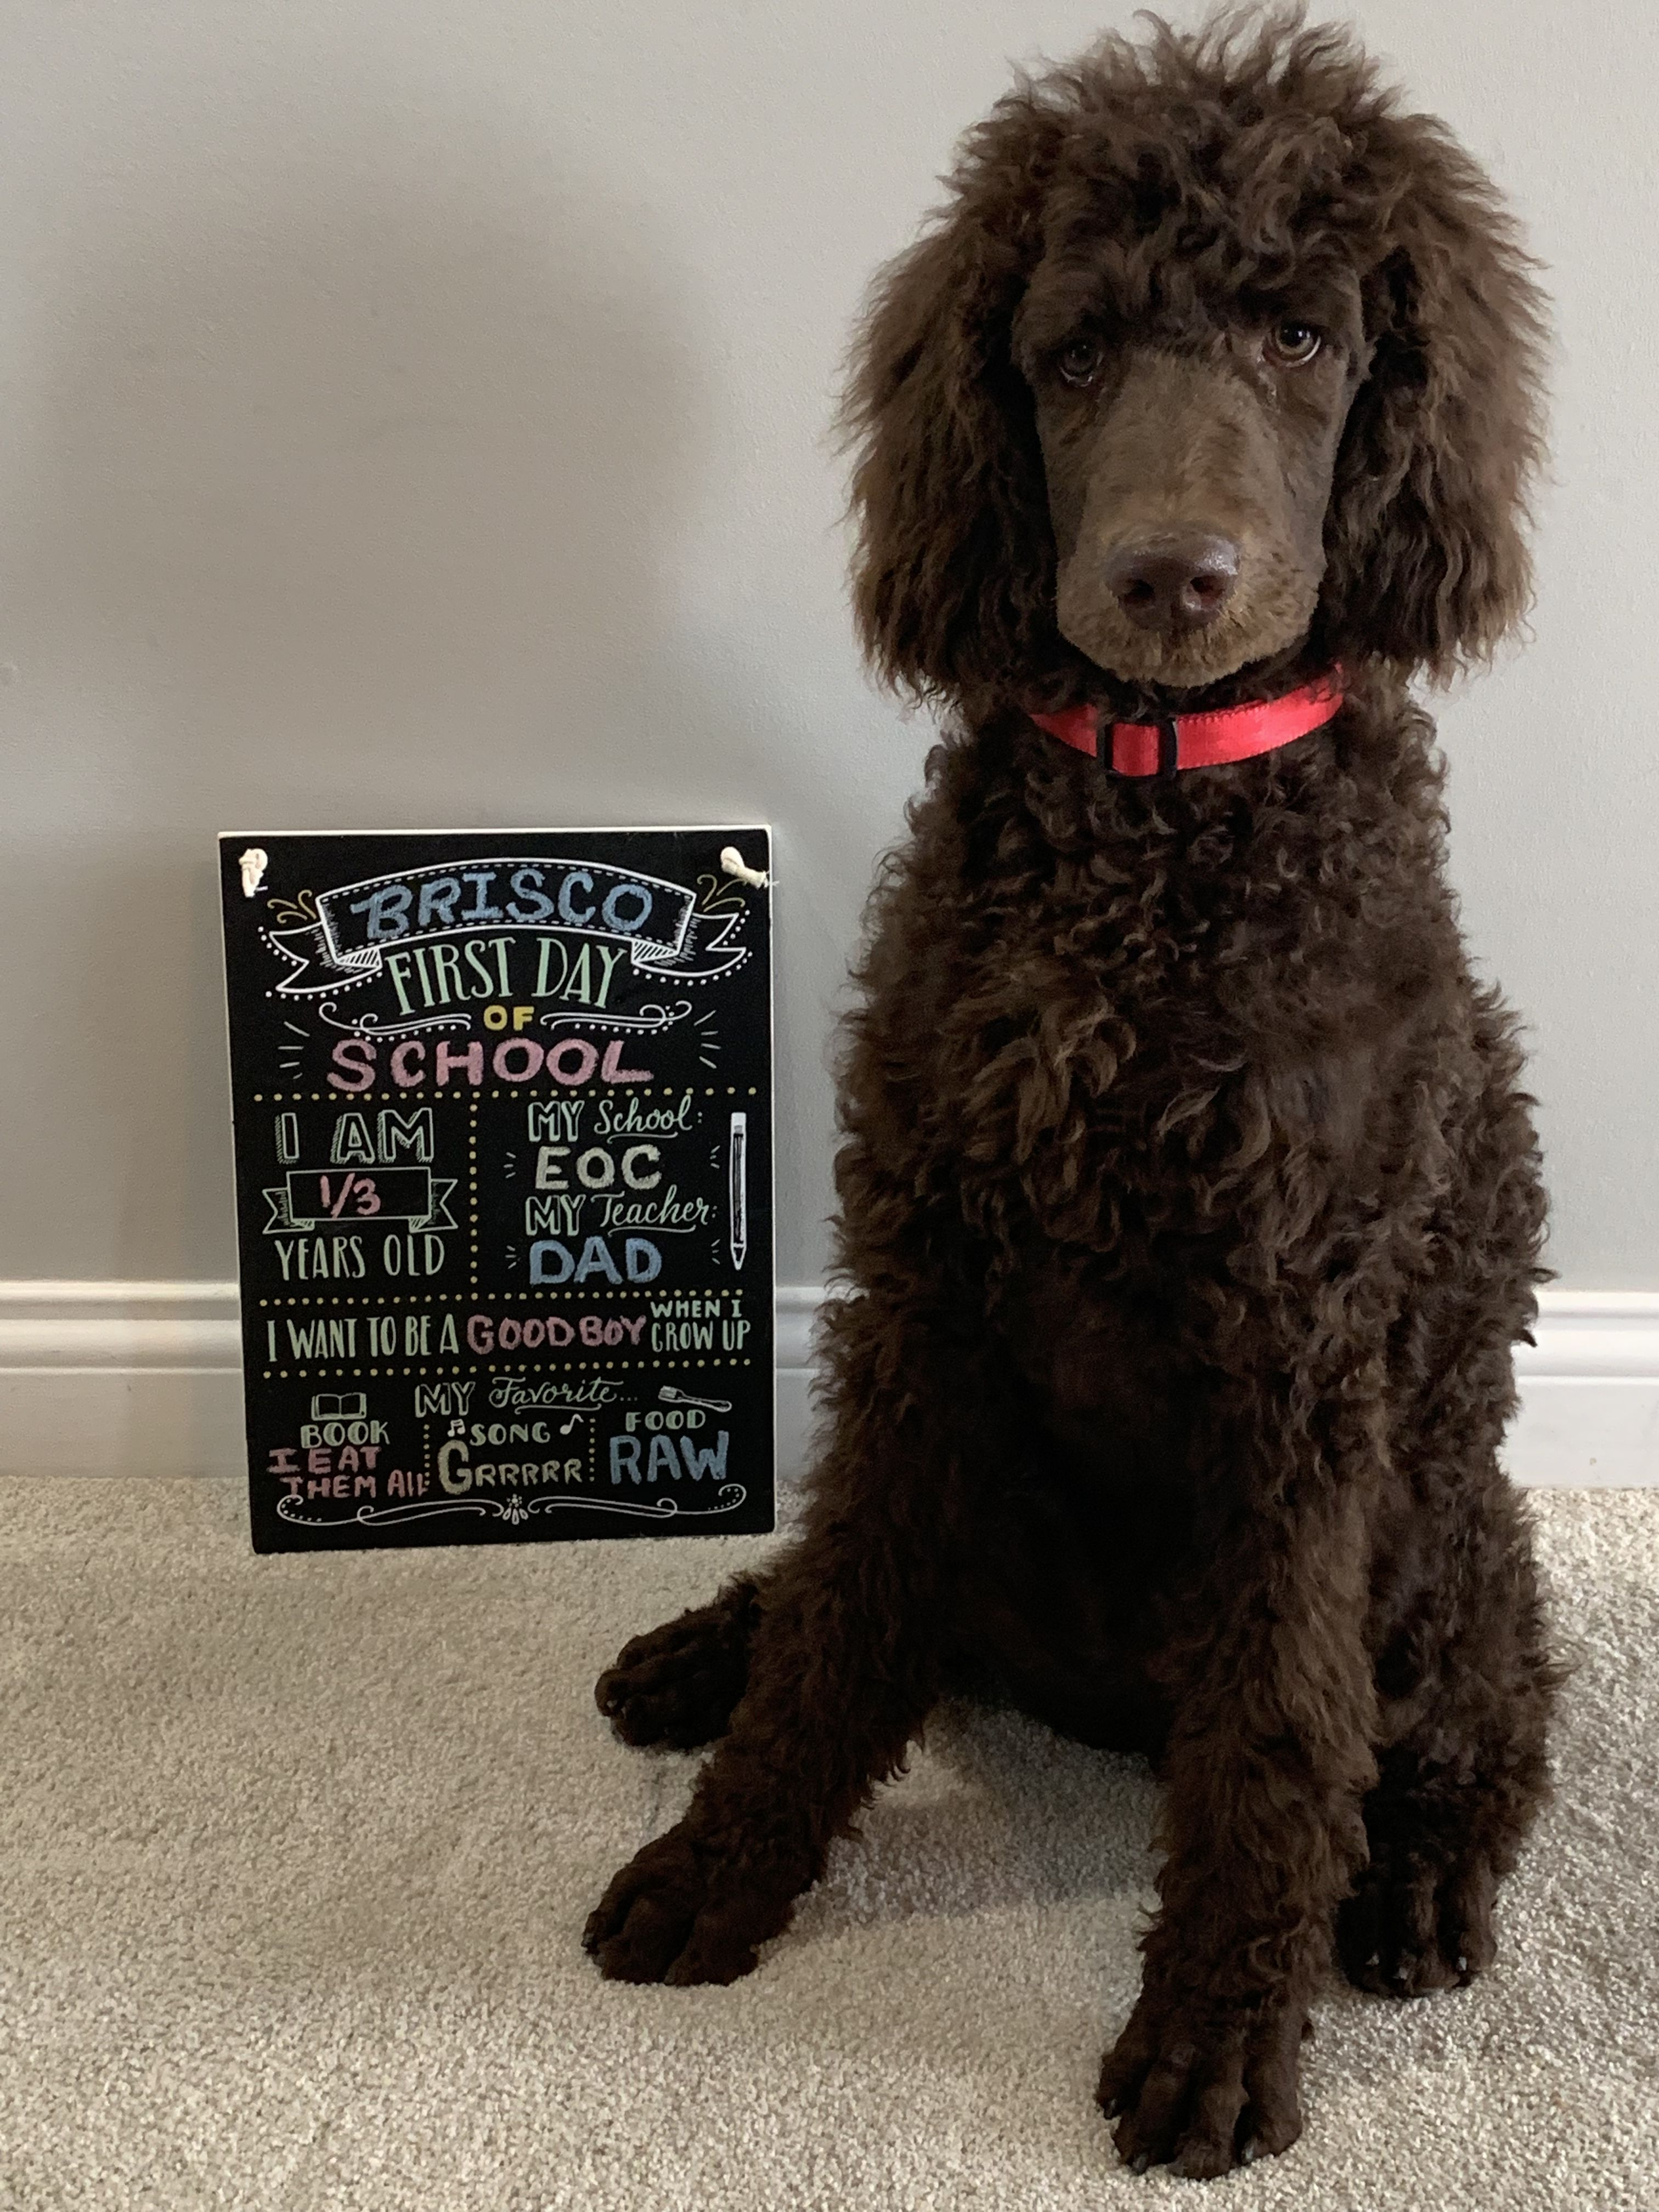 Pin By Monsterclean On Standard Poodle Puppy School Puppies